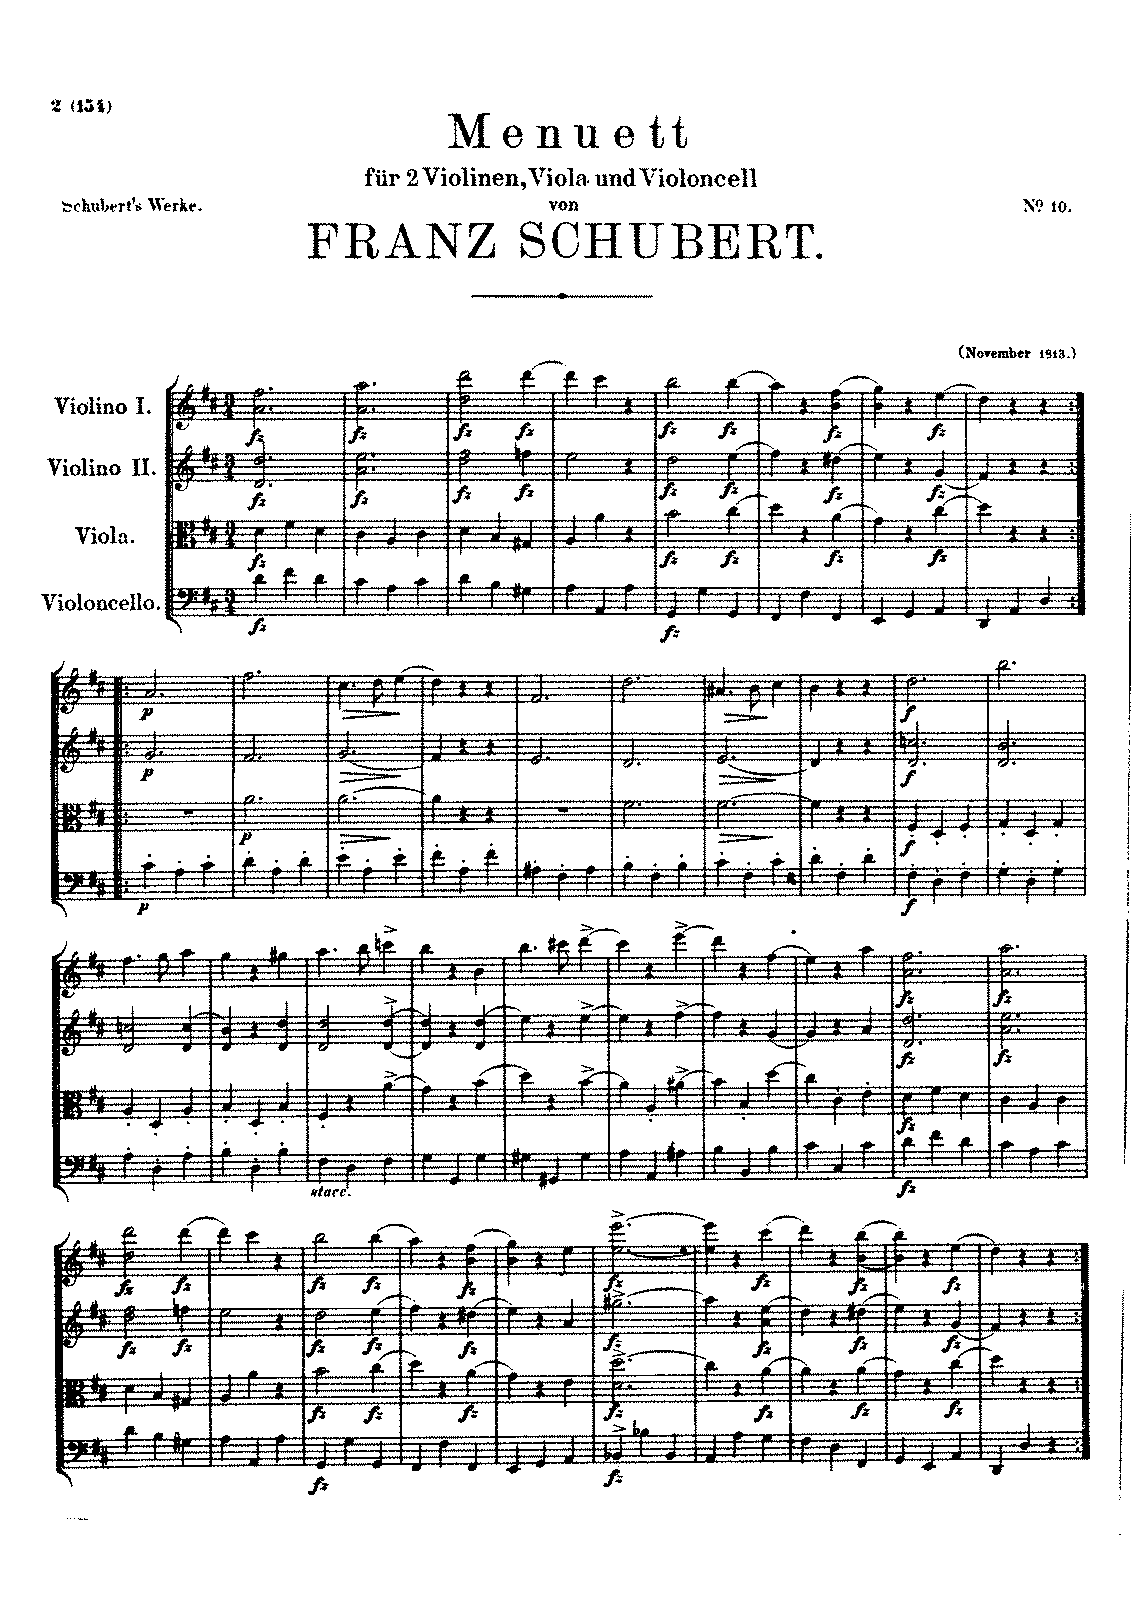 SchubertD086 Minuet in D for String Quartet.pdf